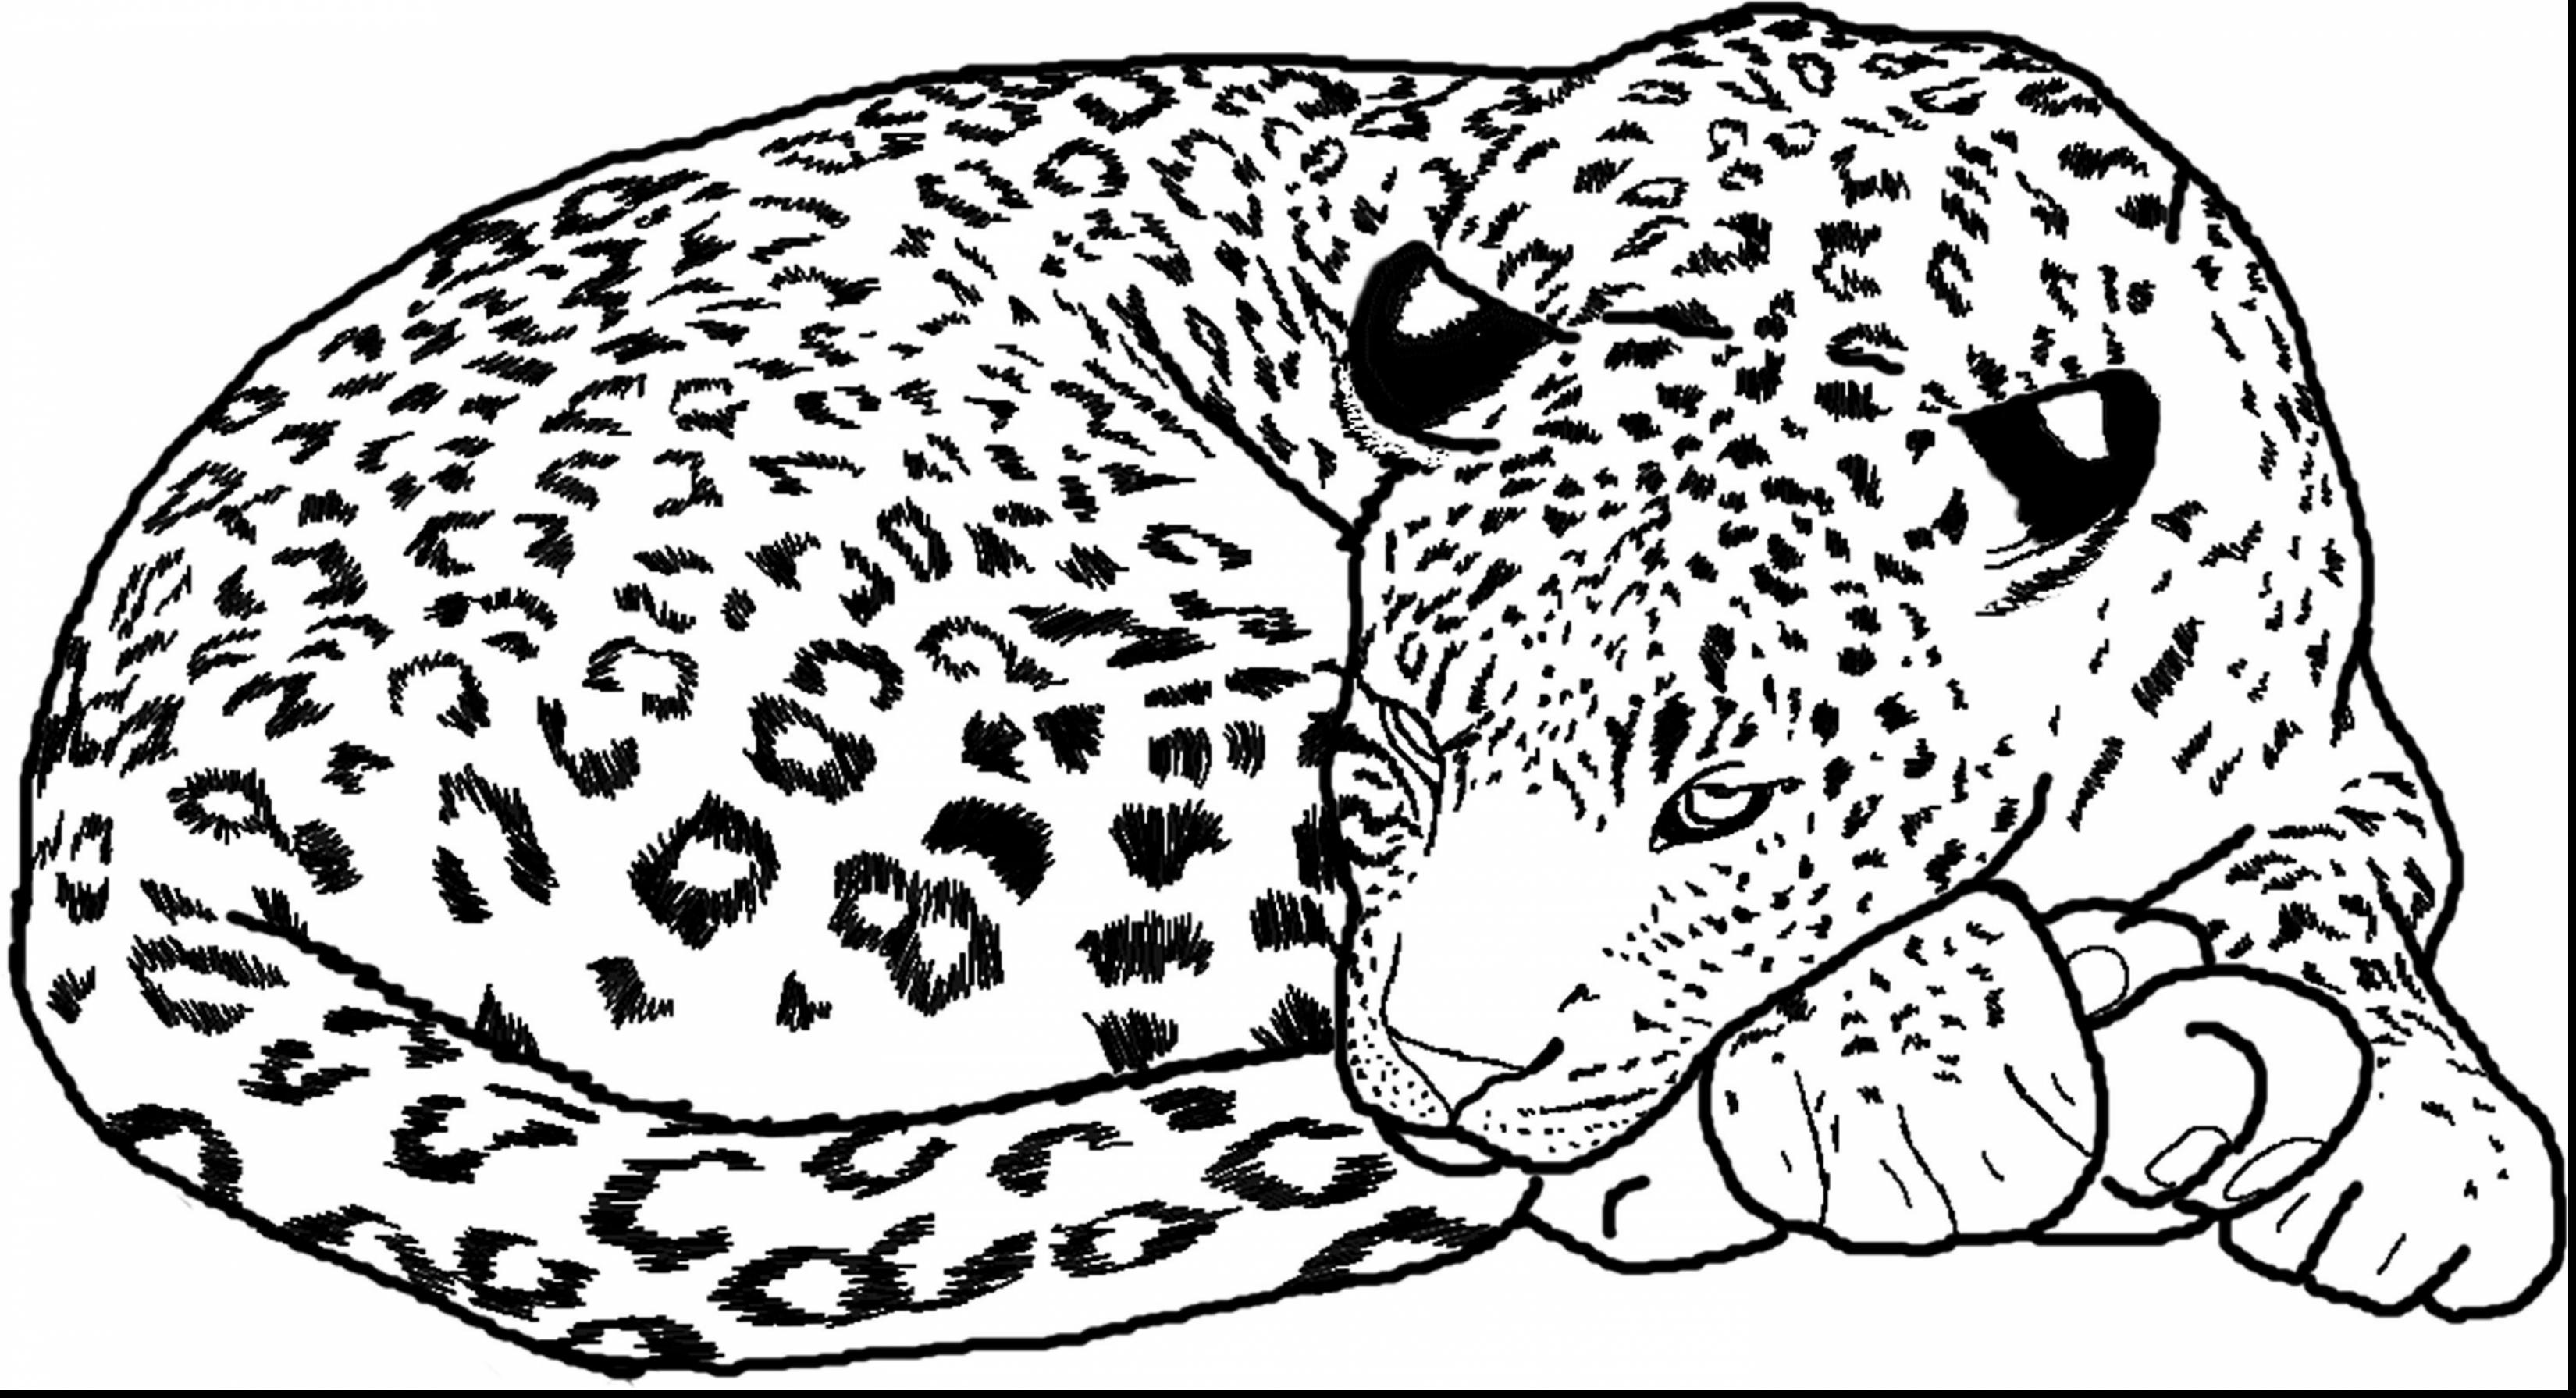 Cheetah Coloring Pages For Adults At Getdrawings Free Download